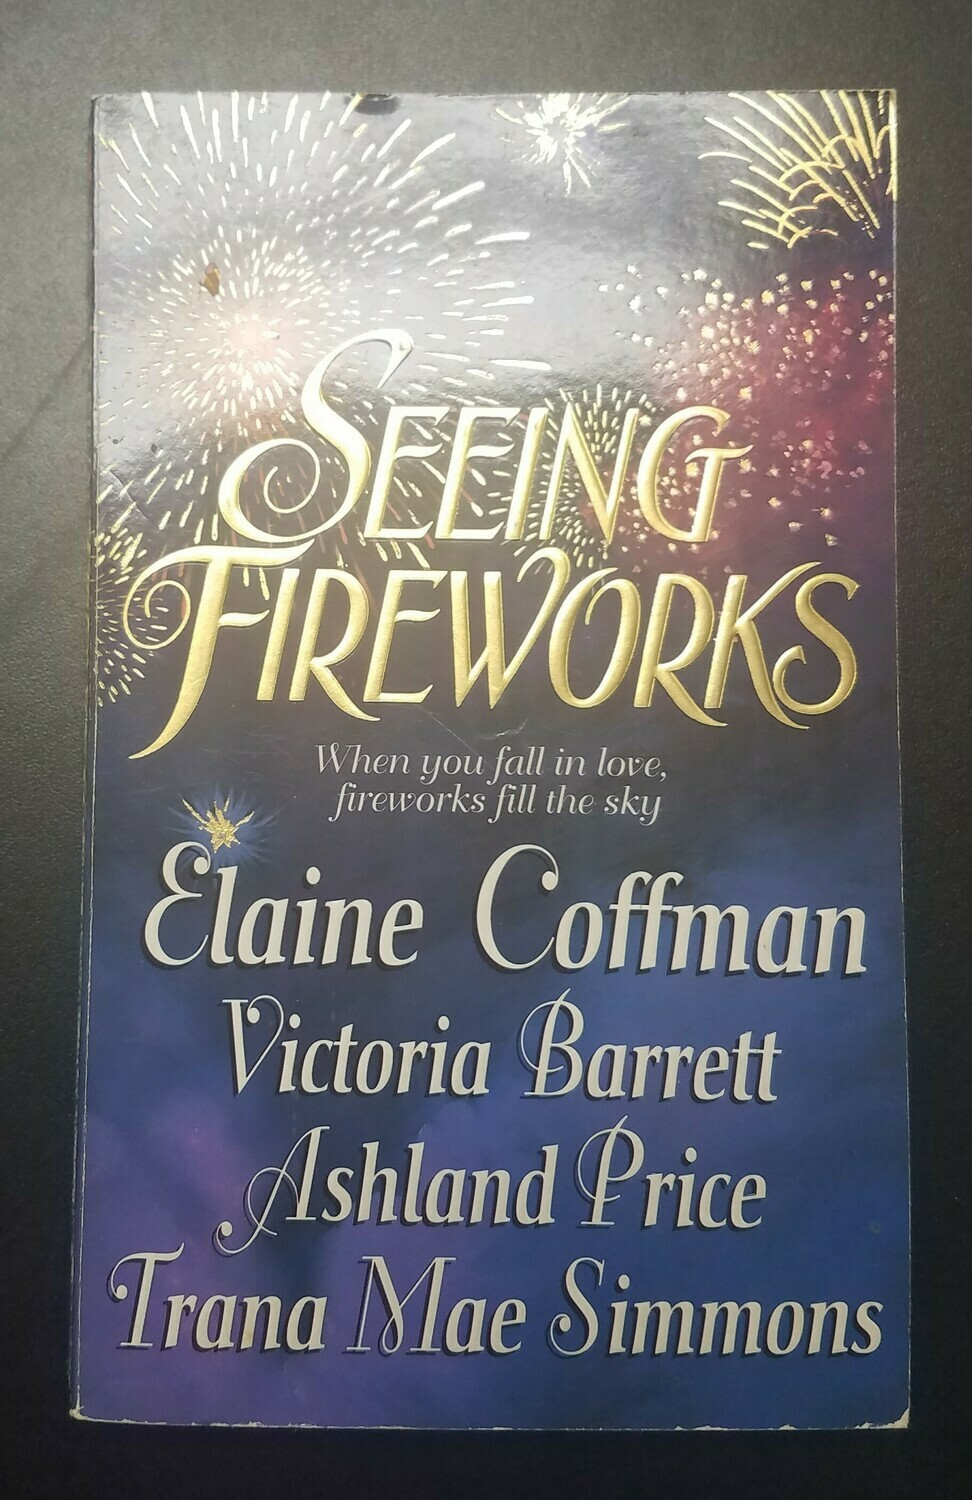 Seeing Fireworks by Elaine Coffman, Victoria Barrett, Ashland Price, and Trana Mae Simmons